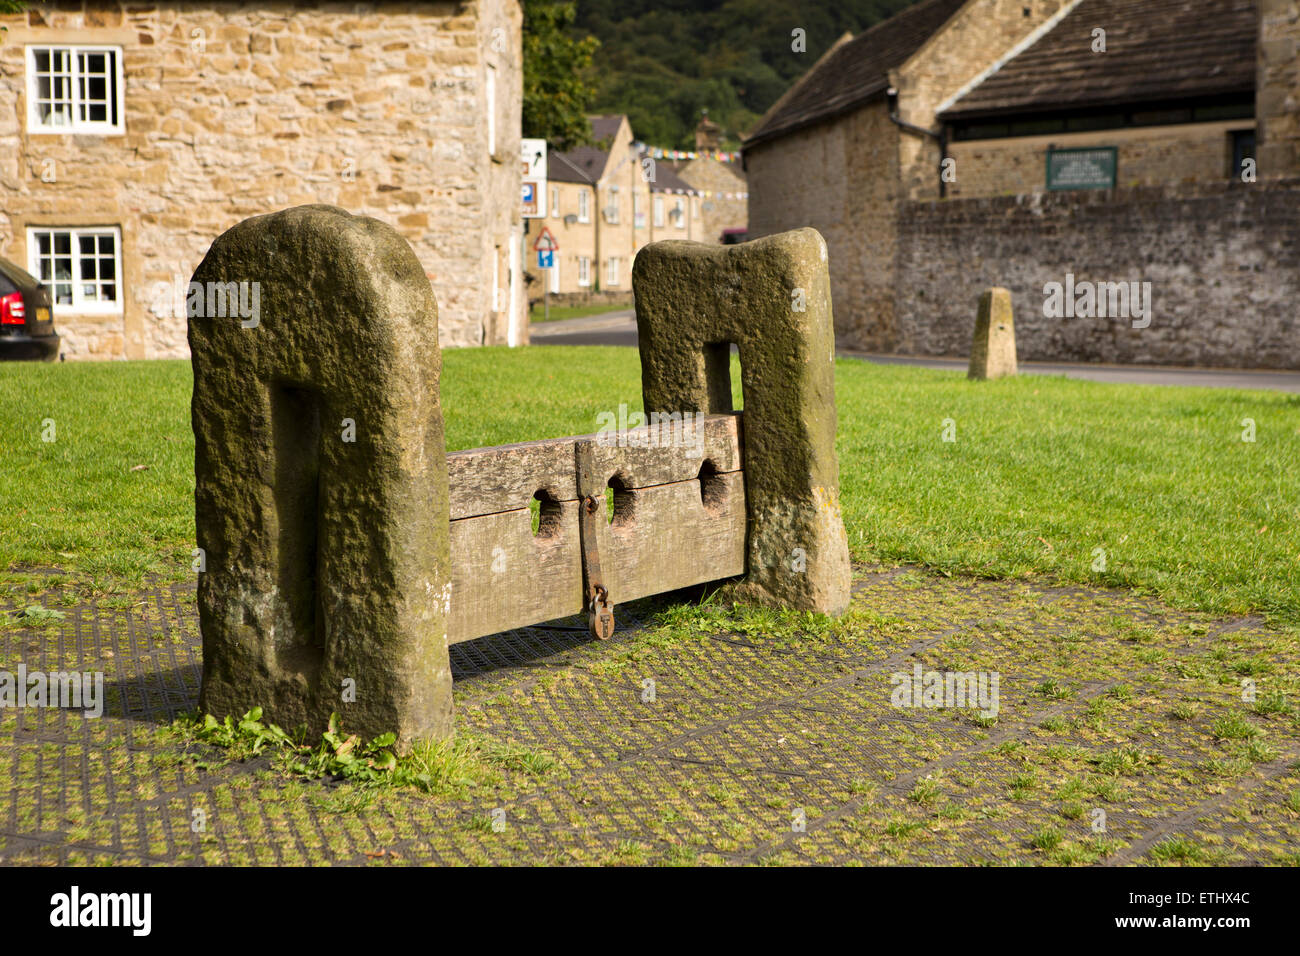 UK, England, Derbyshire, Eyam, Market Square, early C19th stone an wooden punishment stocks - Stock Image